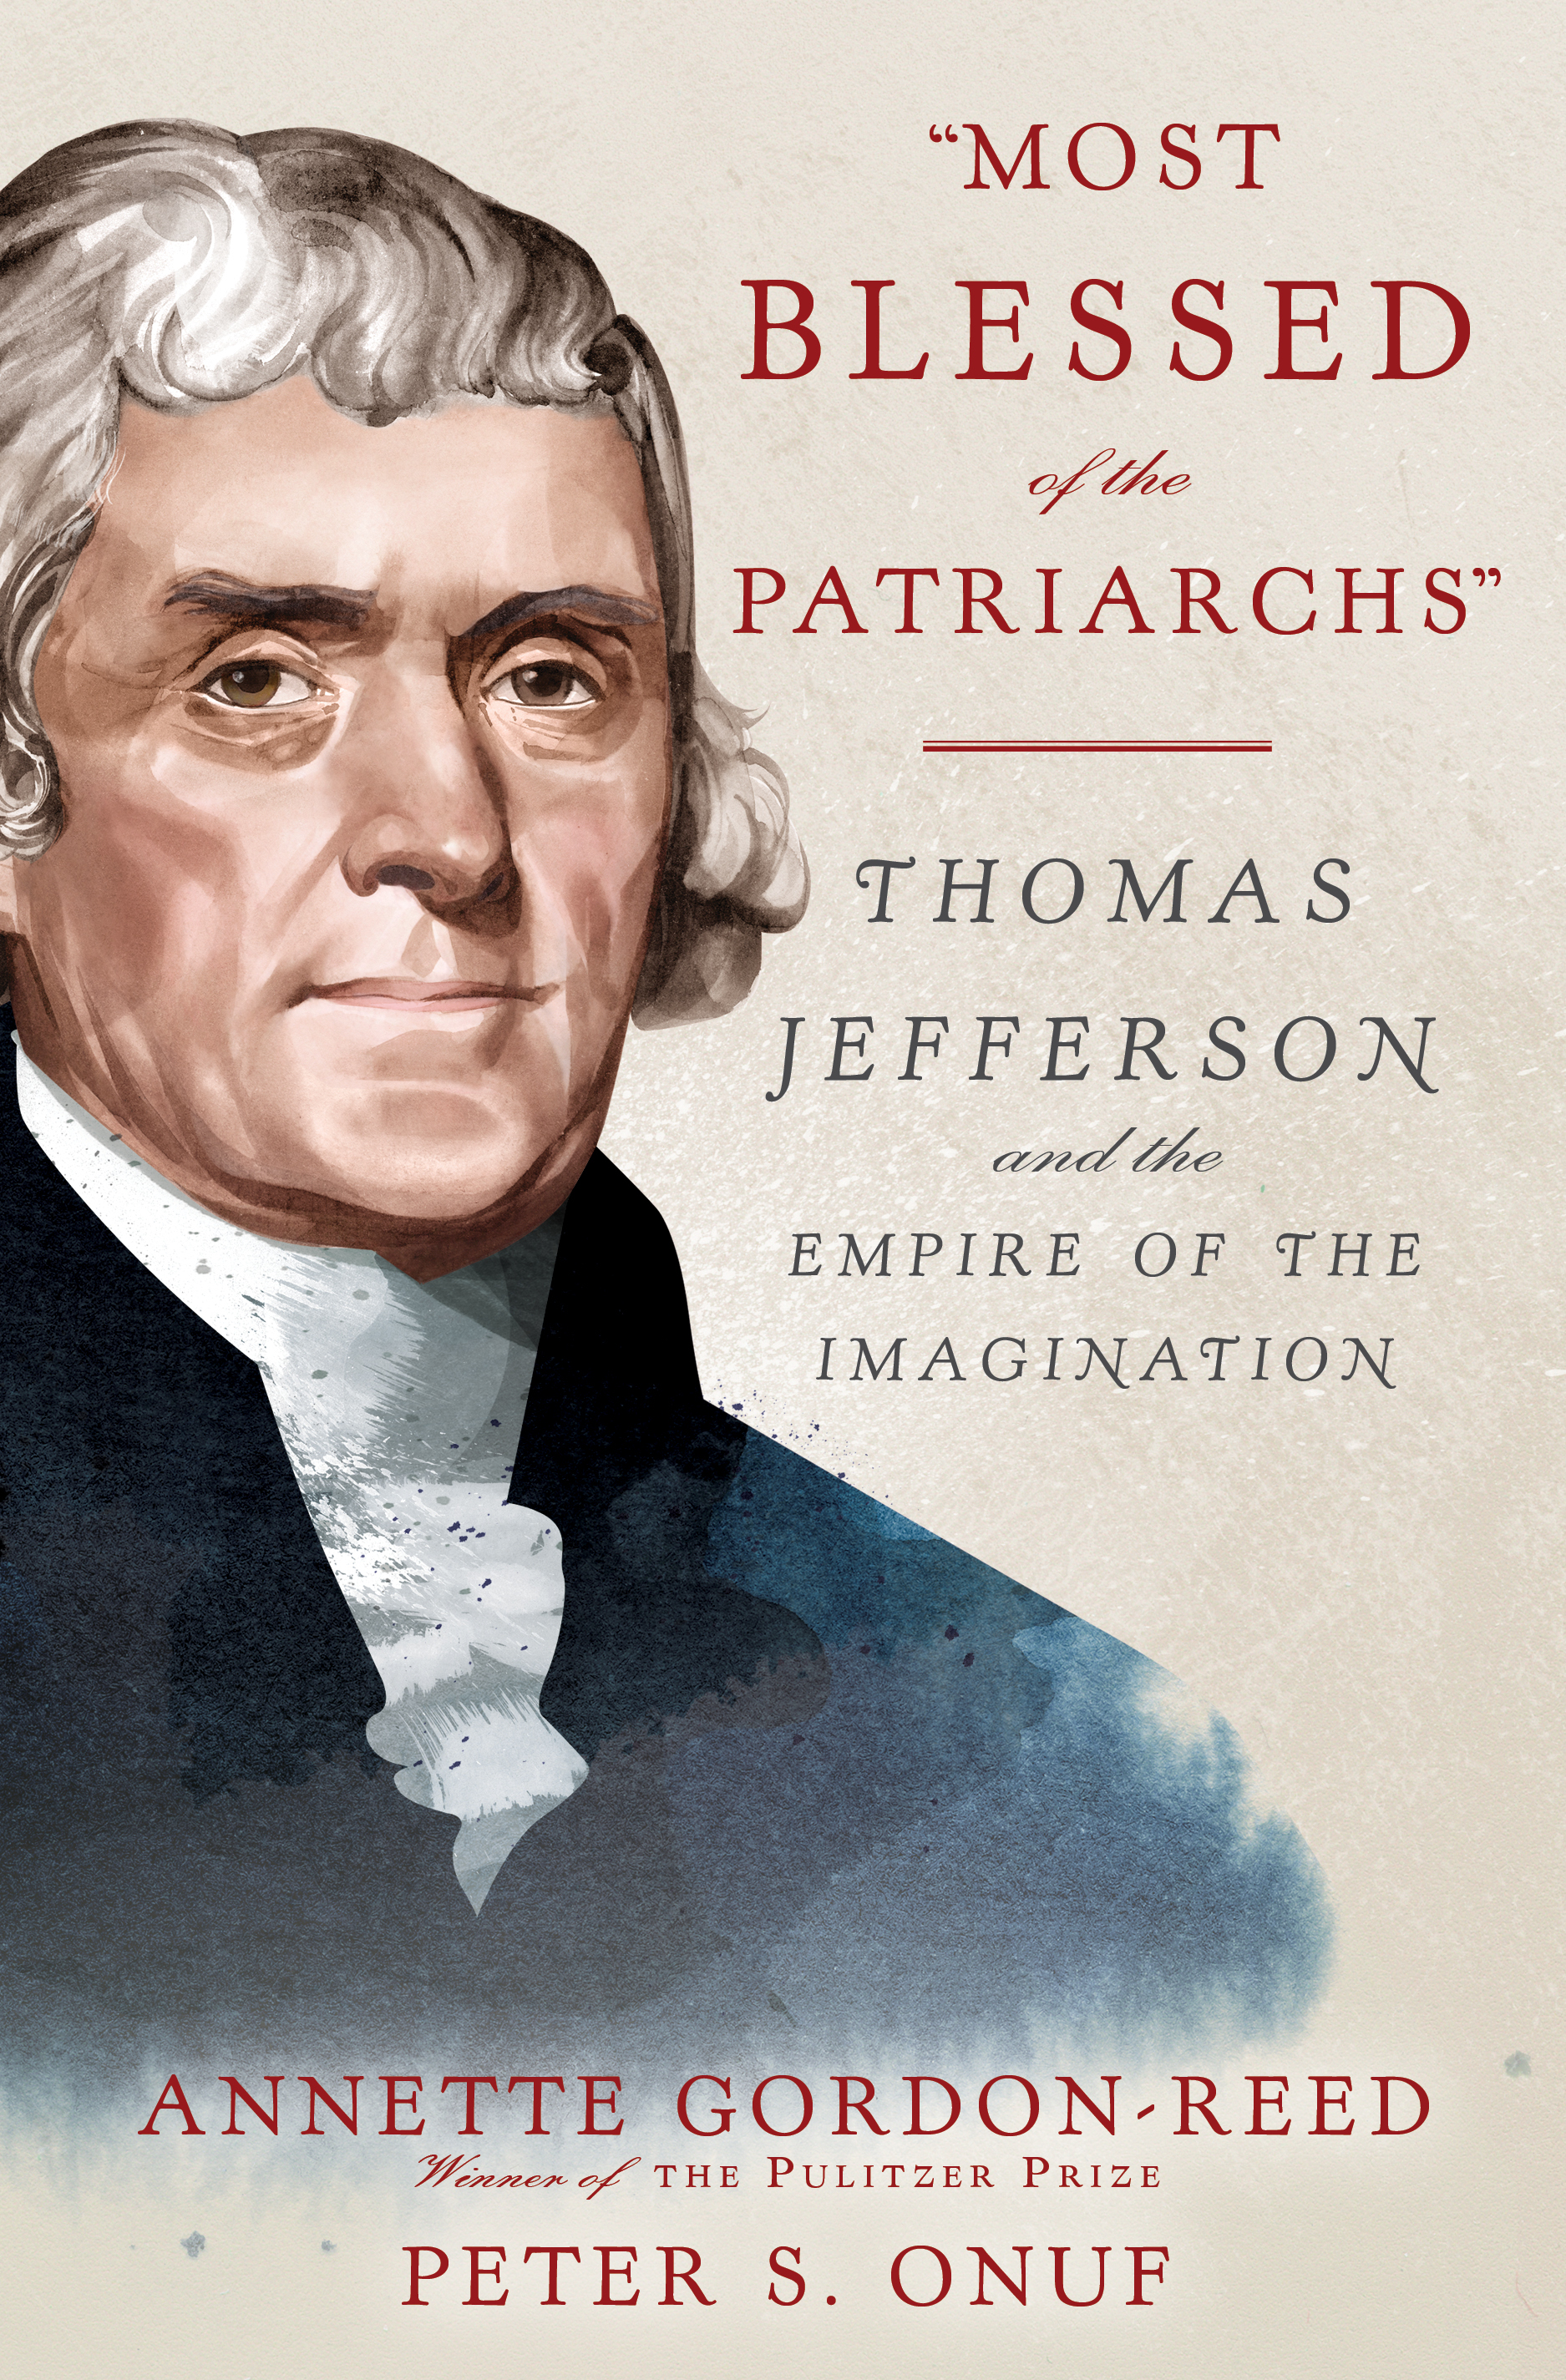 To understand the US's complex history with slavery, look to Thomas Jefferson